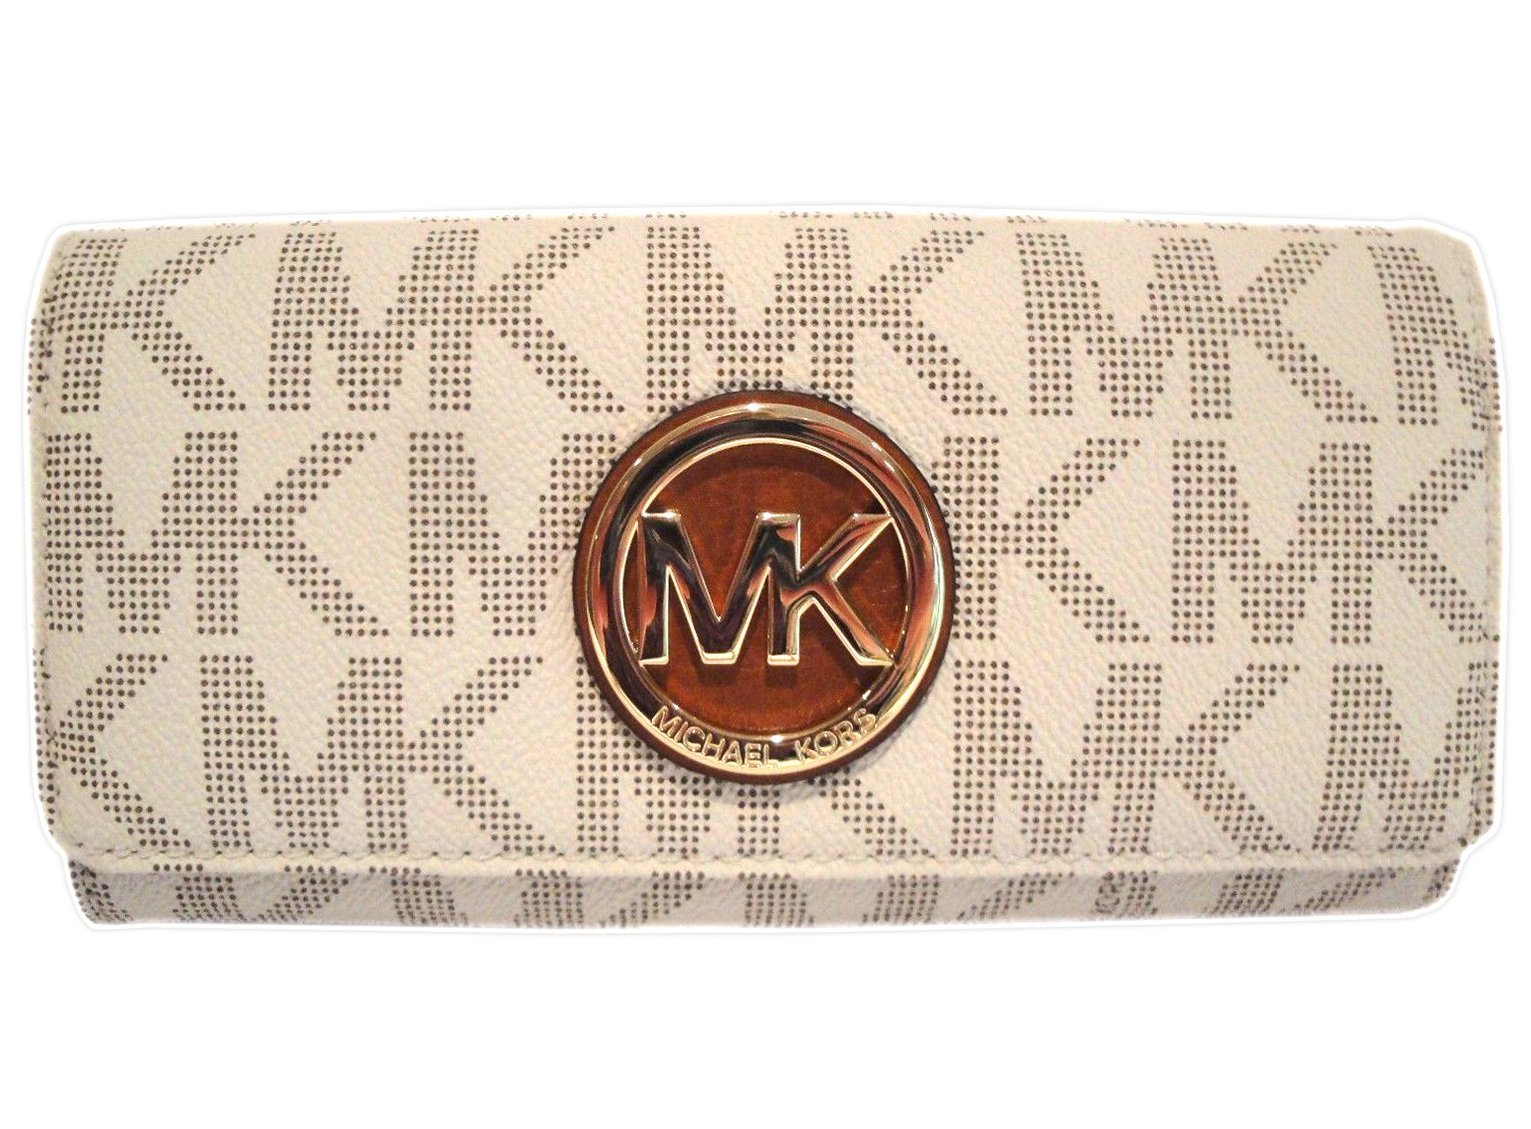 963ced03b5ee ... low cost michael kors womens fulton signature long continental clutch  wallet vanilla acor 40489 b5c8f